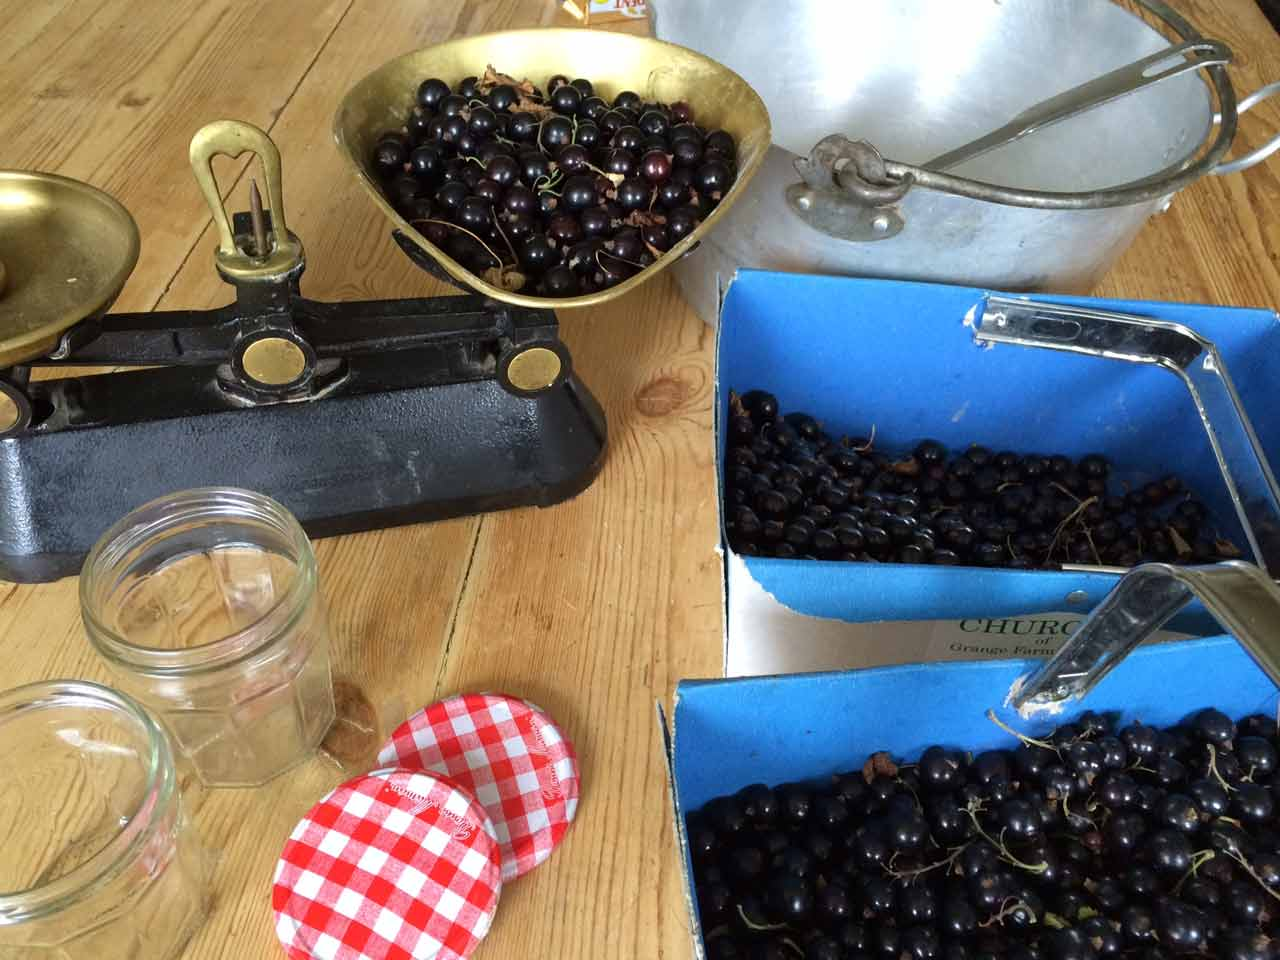 A bumper crop of blackcurrants ready for turning into jam